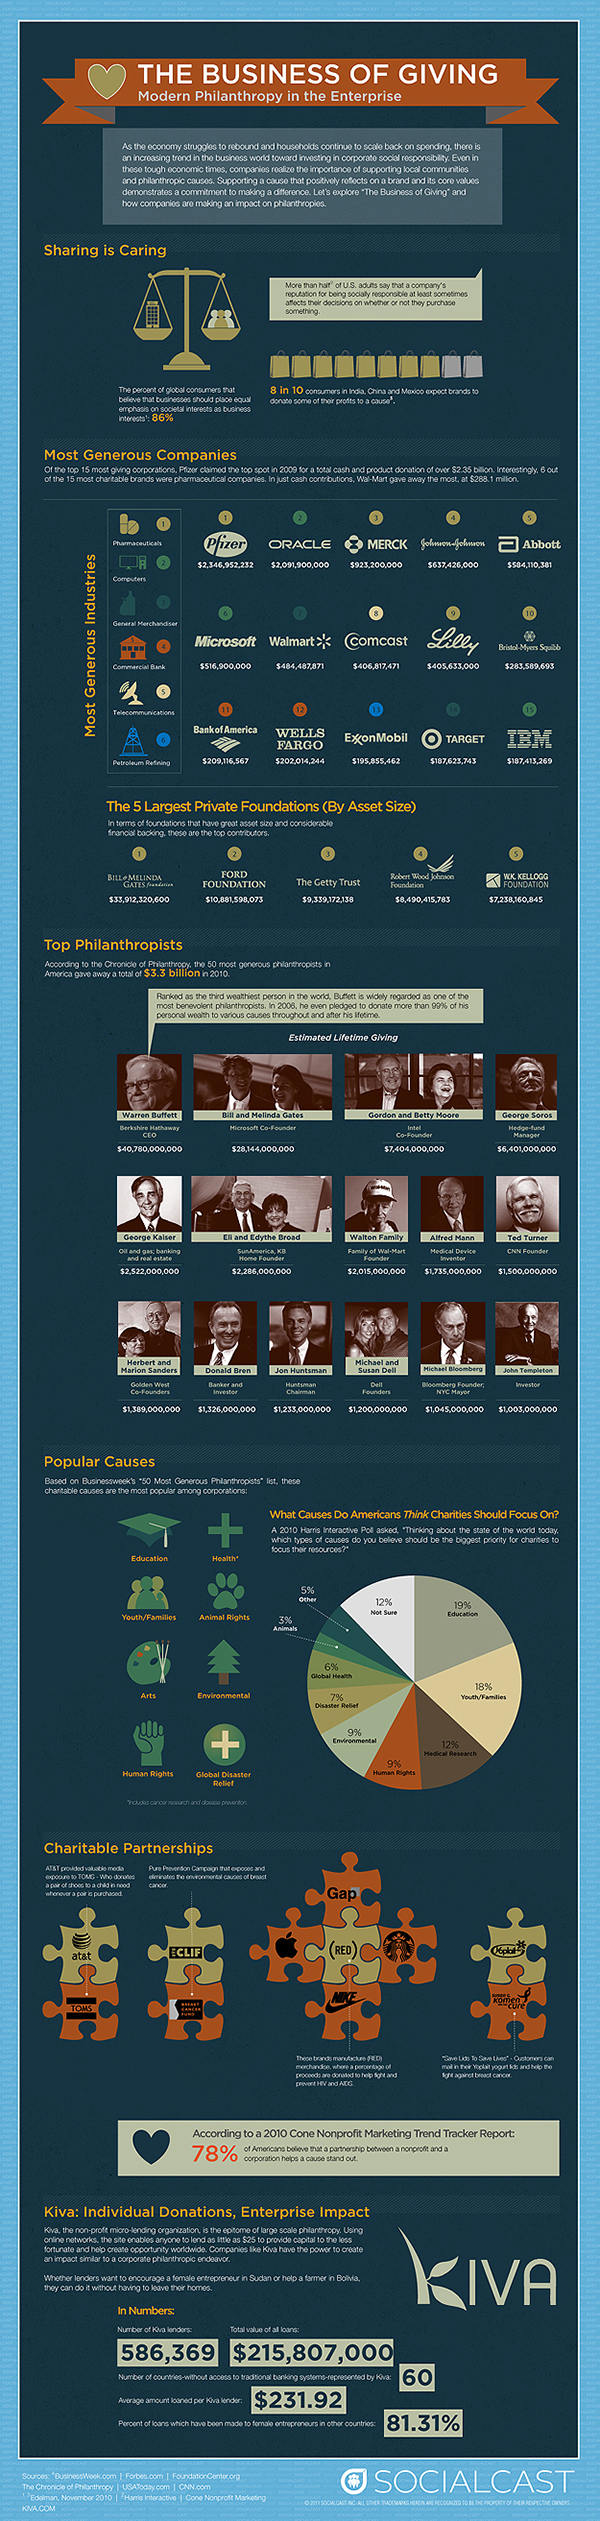 B2usiness-of-Giving-Philanthropy-Infographic